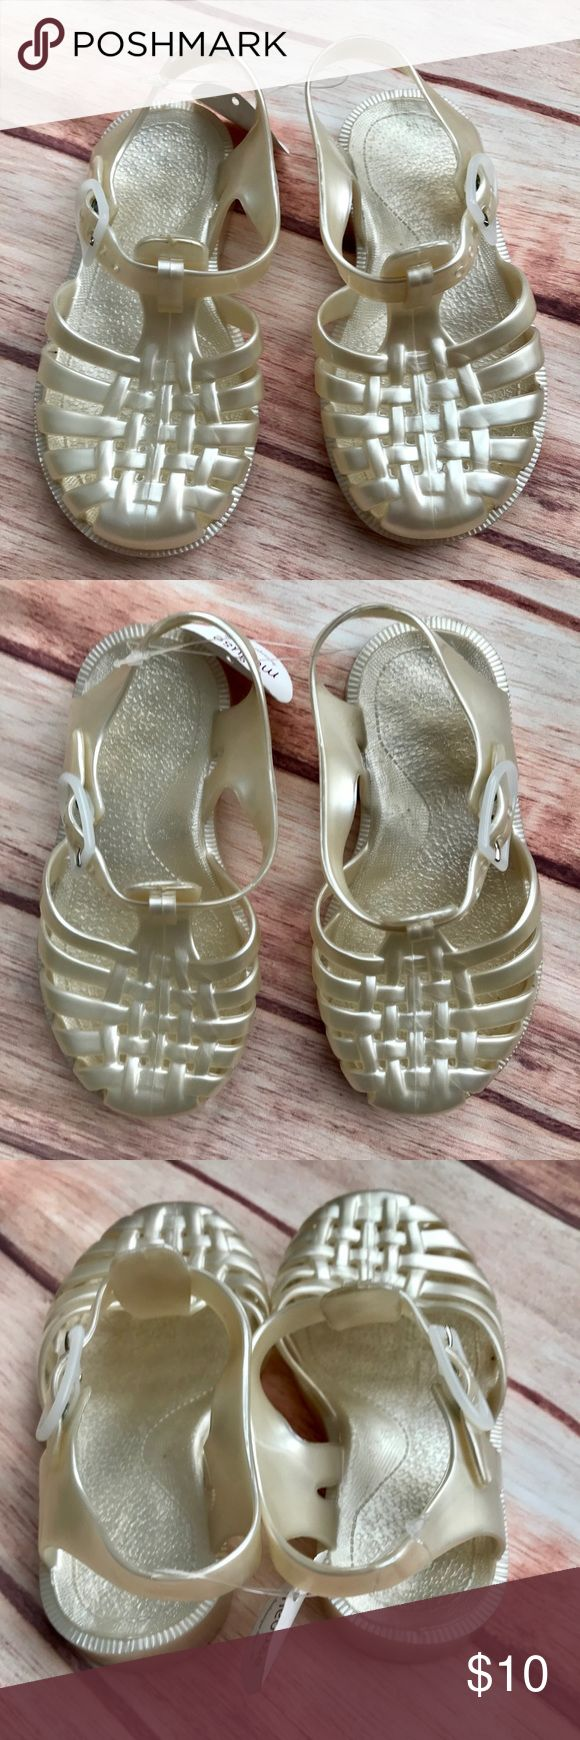 Sun Jellies Jelly Sandals - Girls EU size 25. Sun Jellies is located in the UK. Shoes are pearl, almost goldish color. Sun Jellies Shoes Sandals & Flip Flops